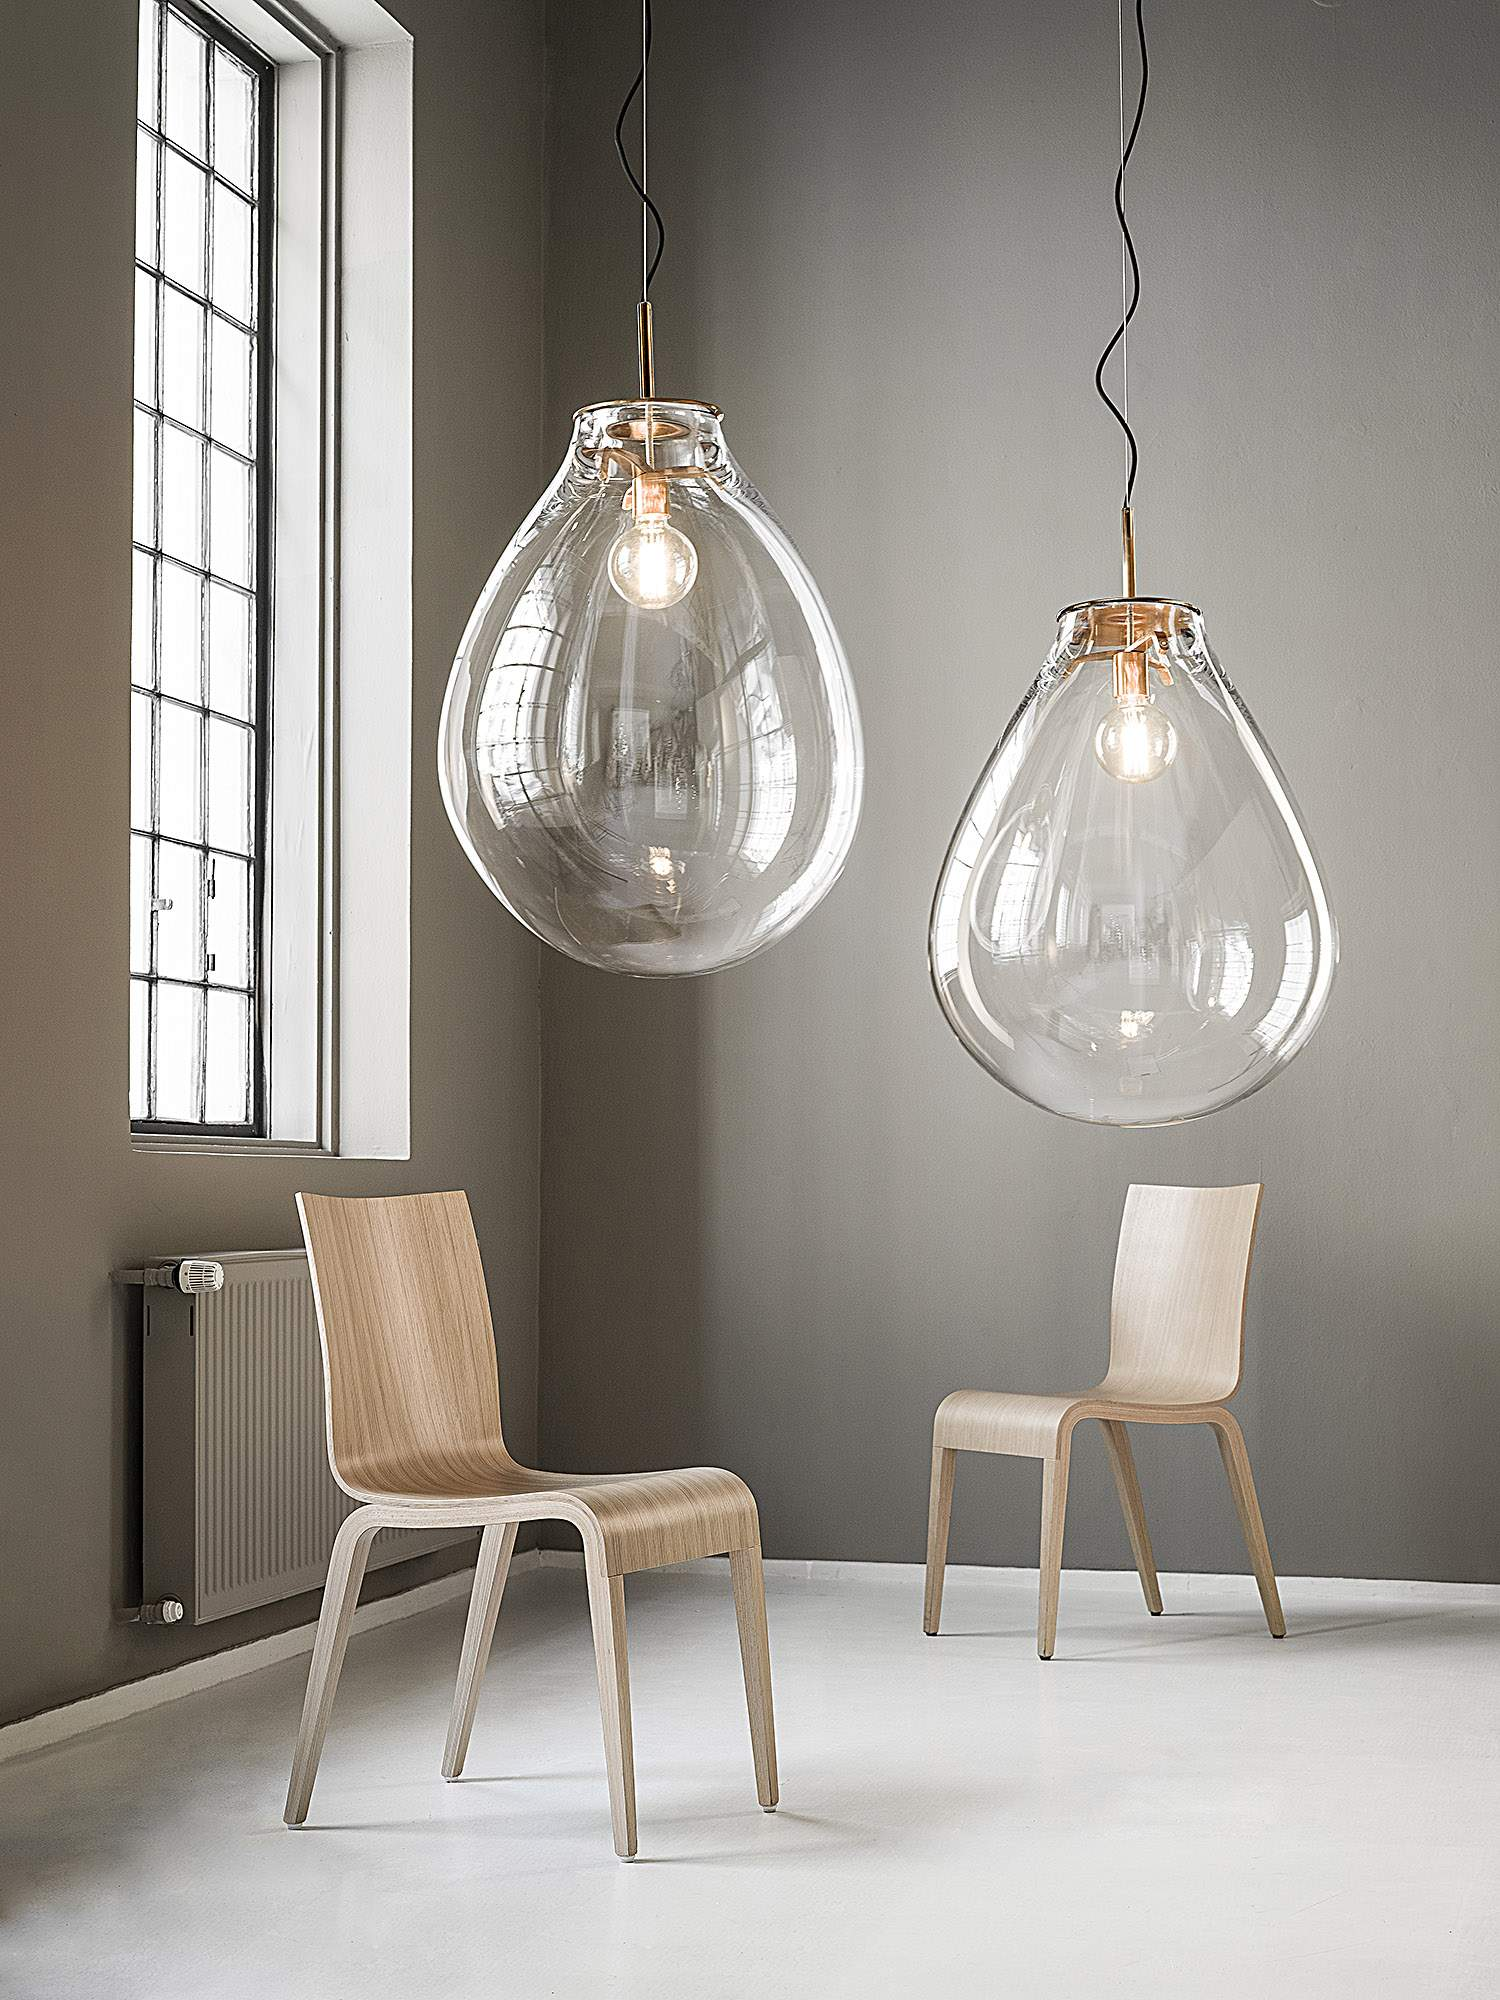 Suspension tim par bomma blog design - Grande lampe de salon ...